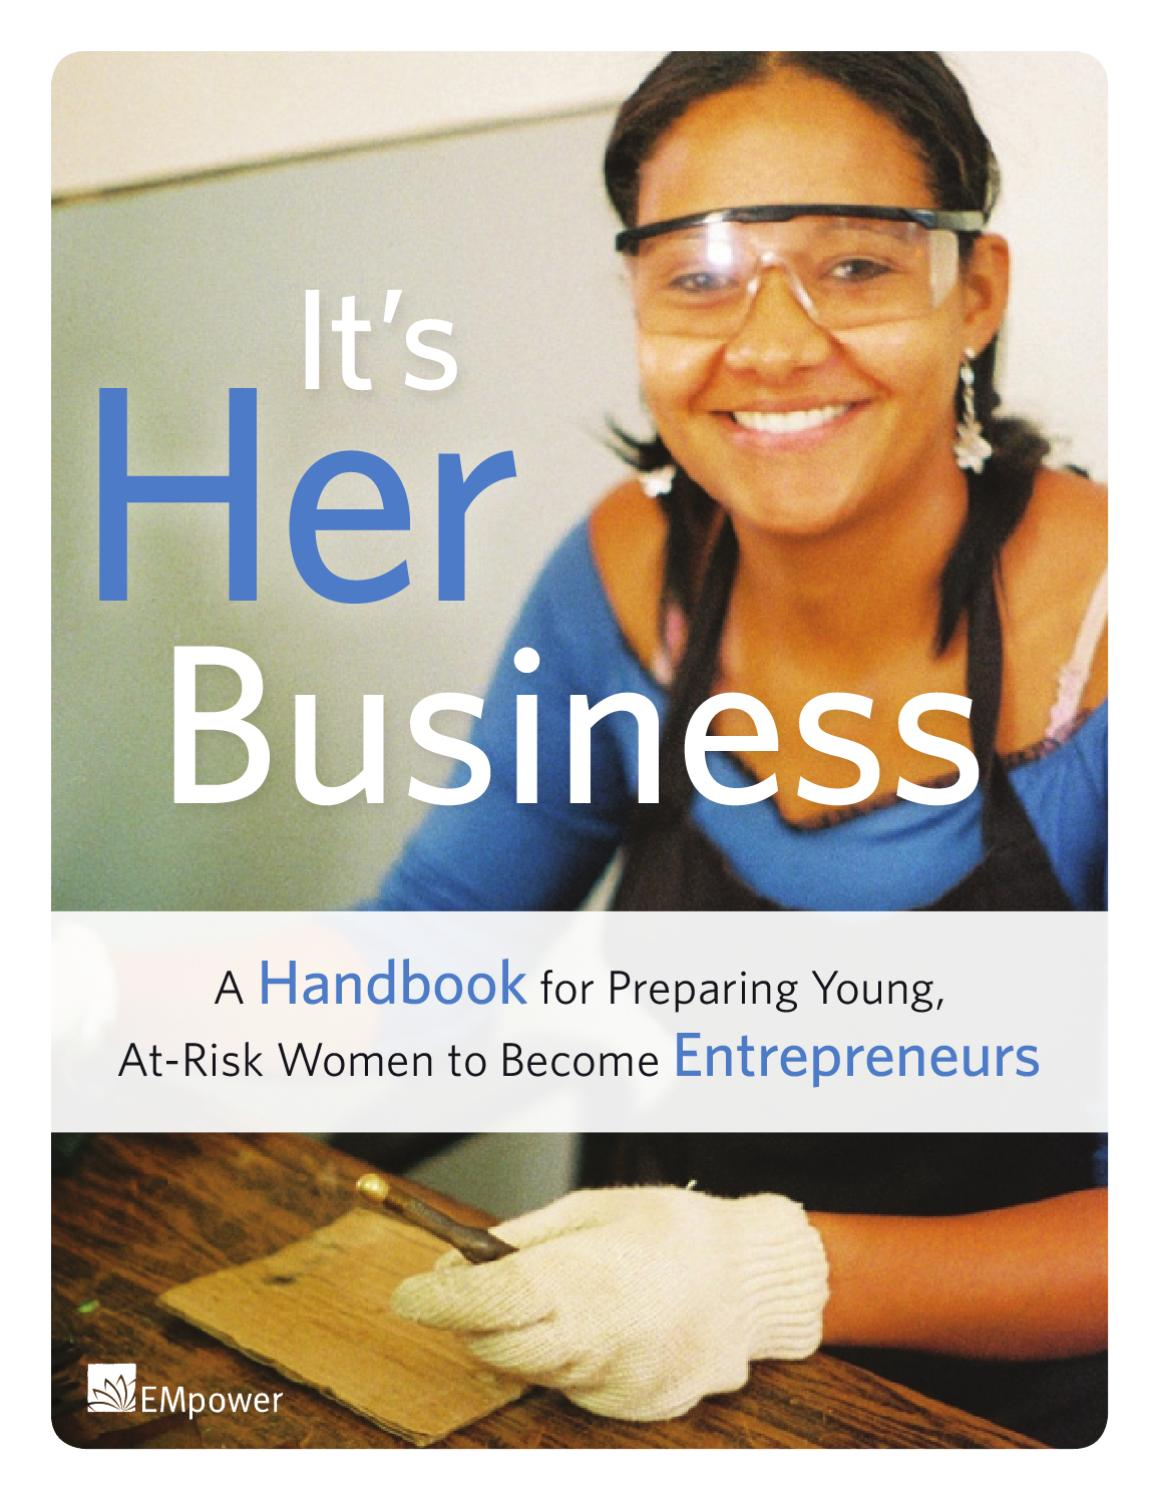 Its Her Business - A Handbook for Preparing Young,At-Risk Women to Become  Entrepreneurs by EMpower - The Emerging Markets Foundation - issuu